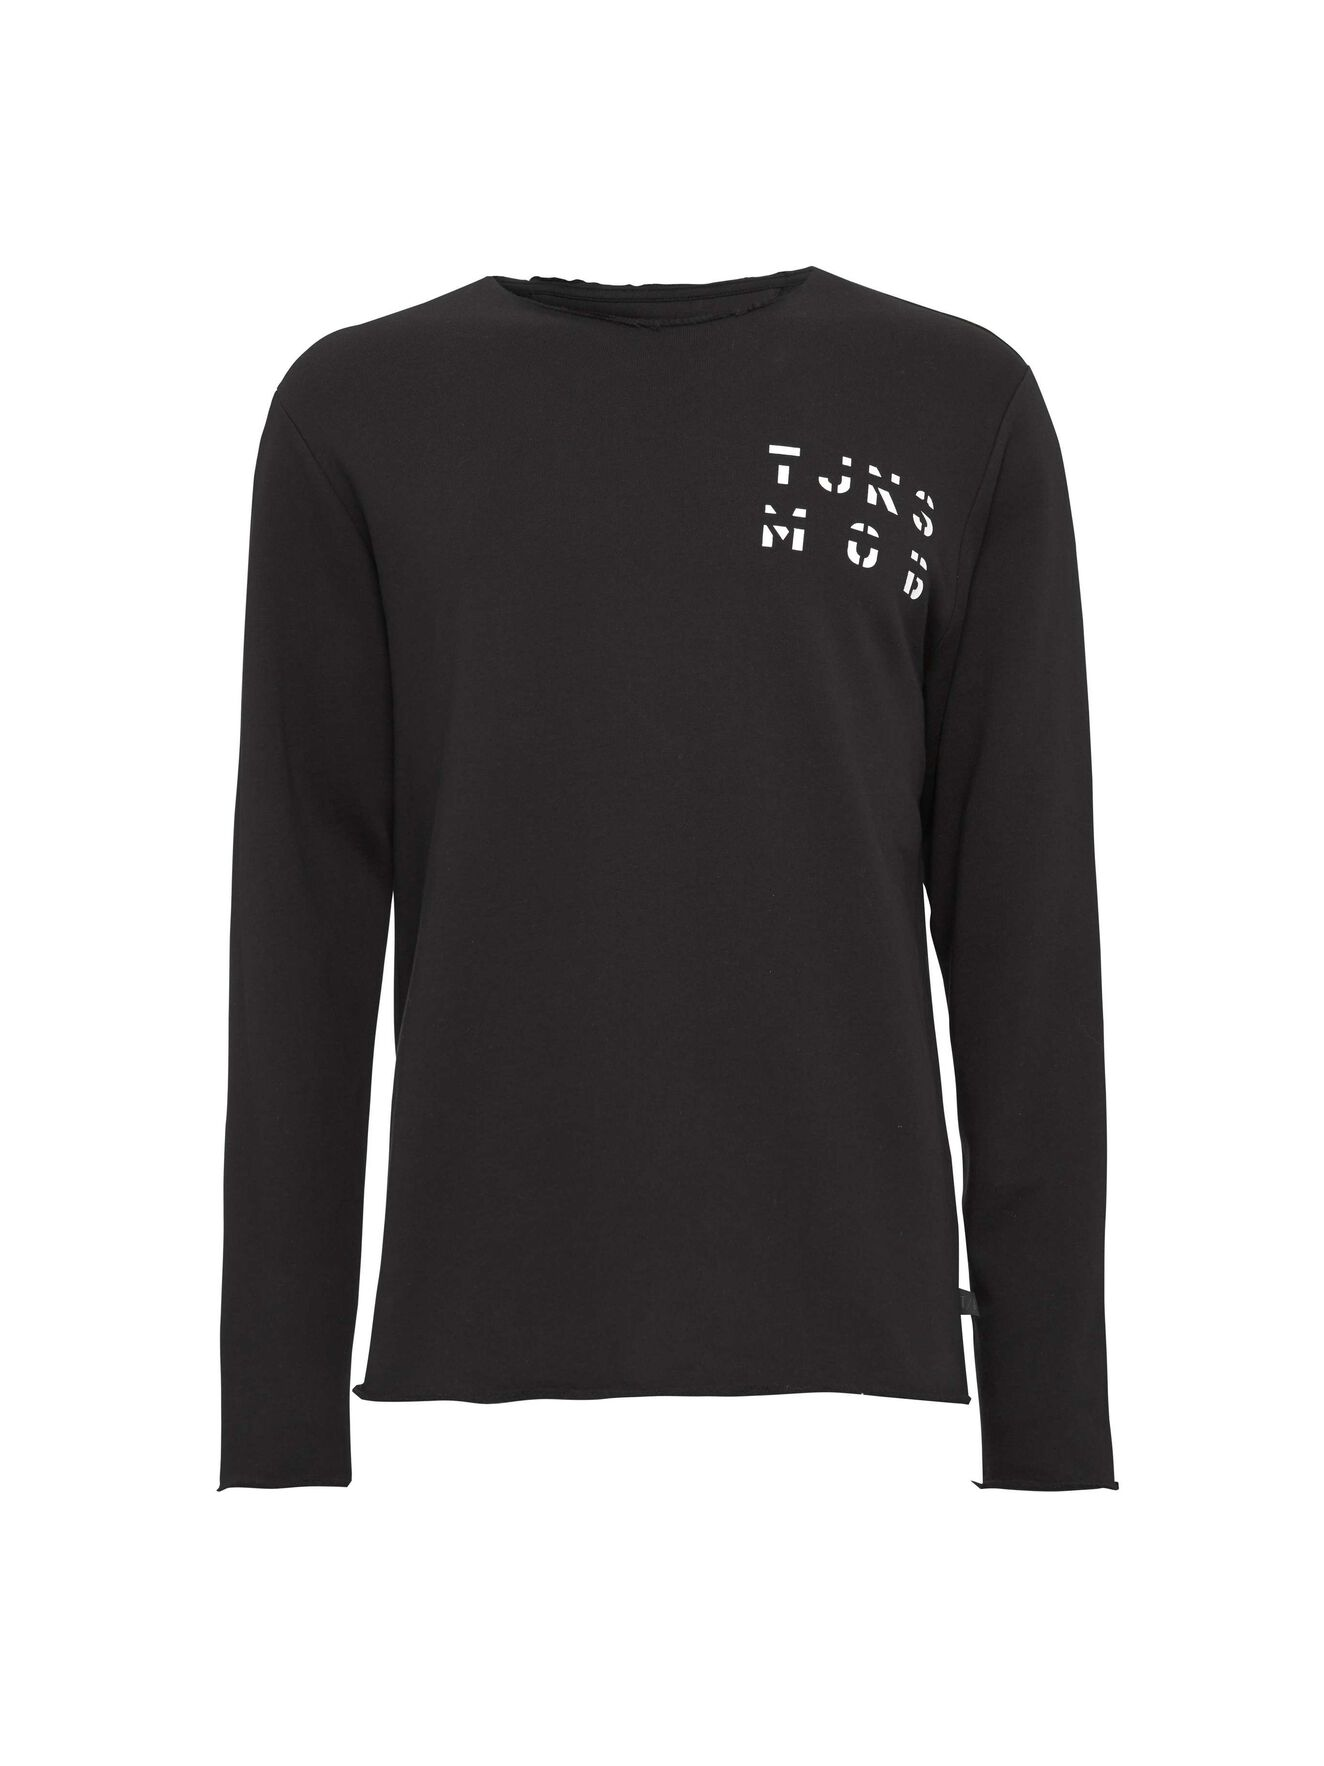 Destroyed  Sweatshirt in Black from Tiger of Sweden